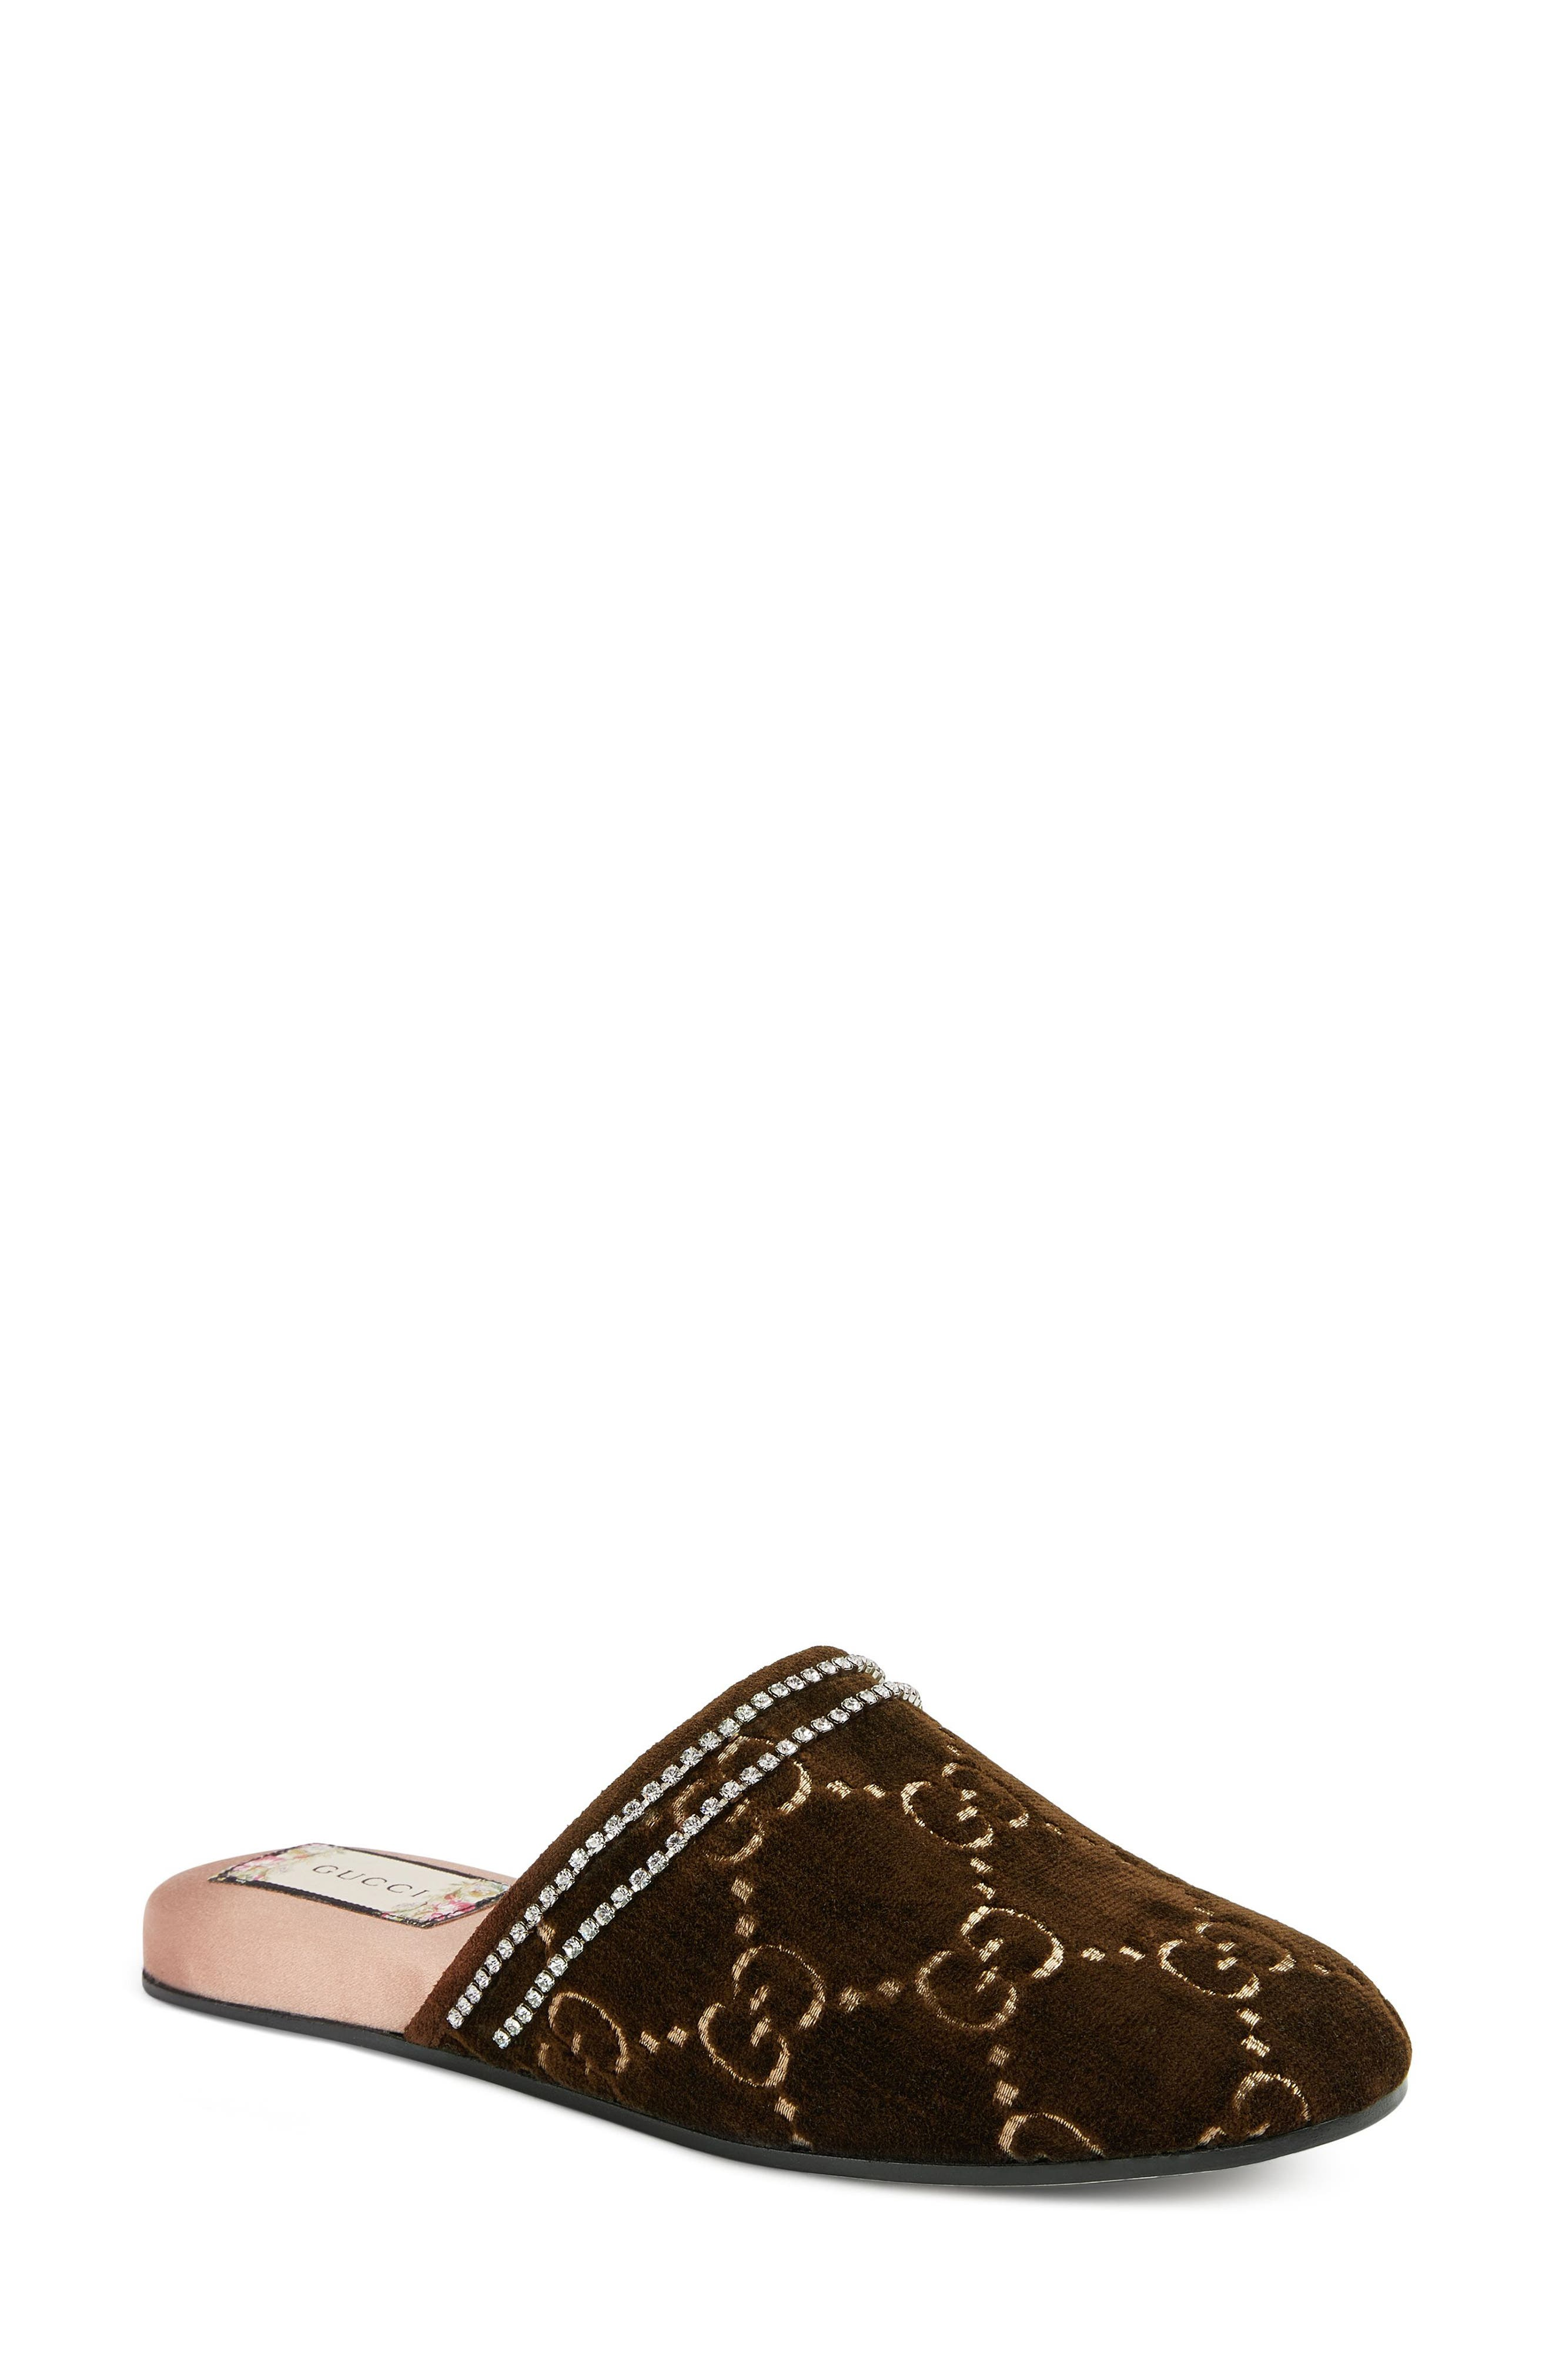 Gucci Rogue Crystal Embellished Logo Mule (Women)